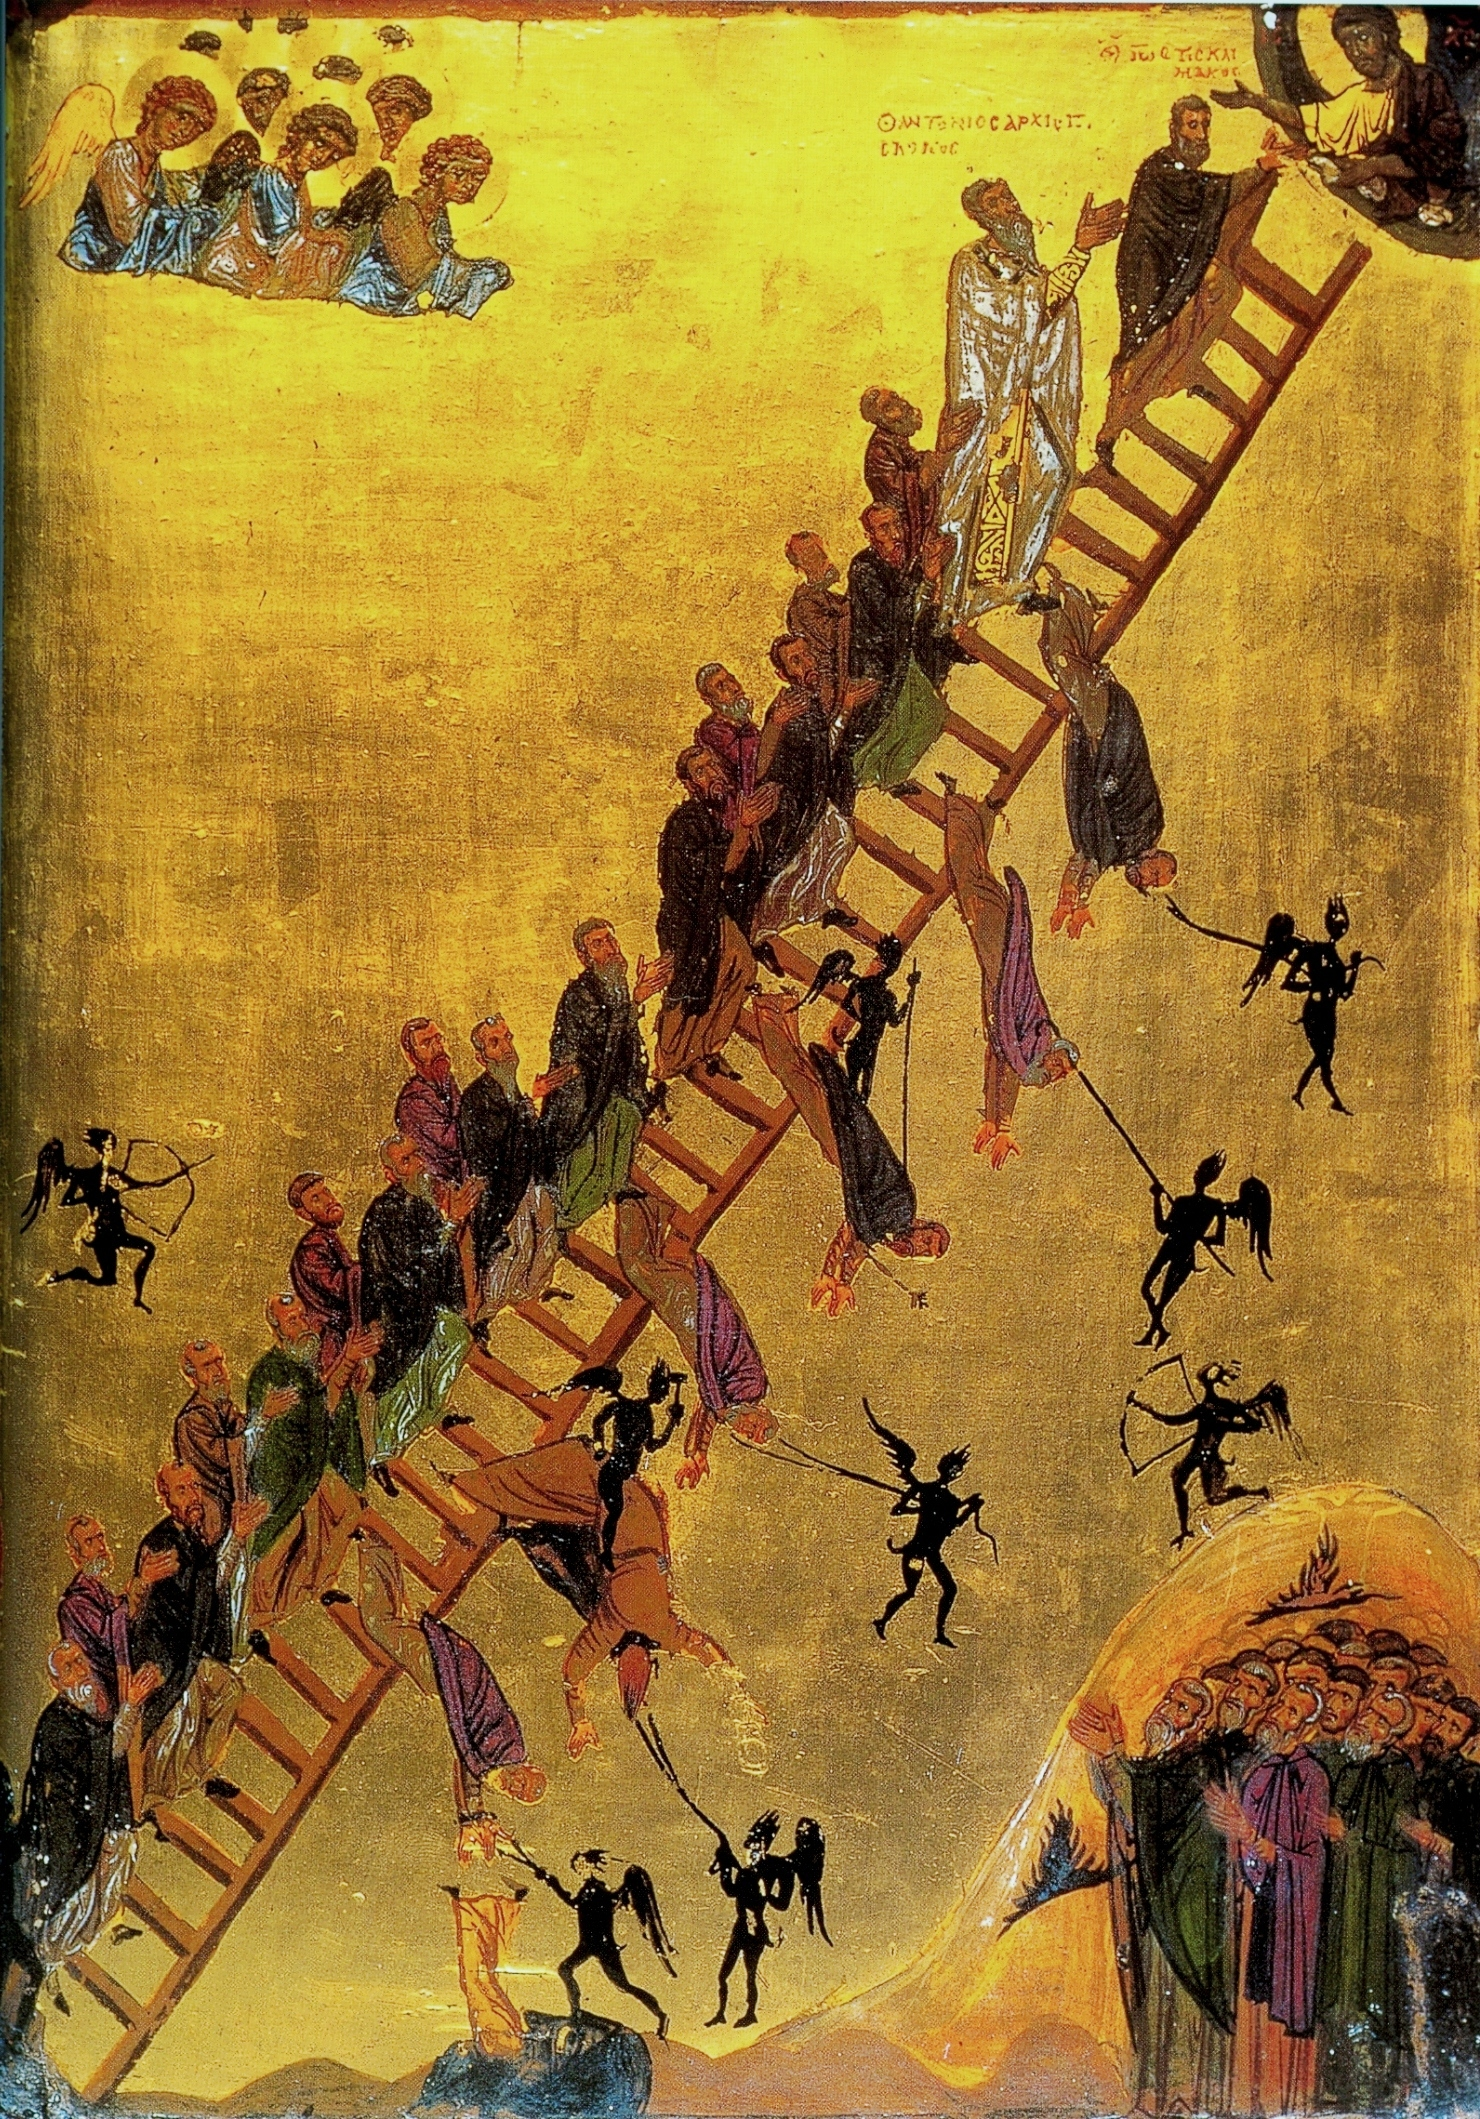 http://upload.wikimedia.org/wikipedia/commons/5/5c/The_Ladder_of_Divine_Ascent_Monastery_of_St_Catherine_Sinai_12th_century.jpg